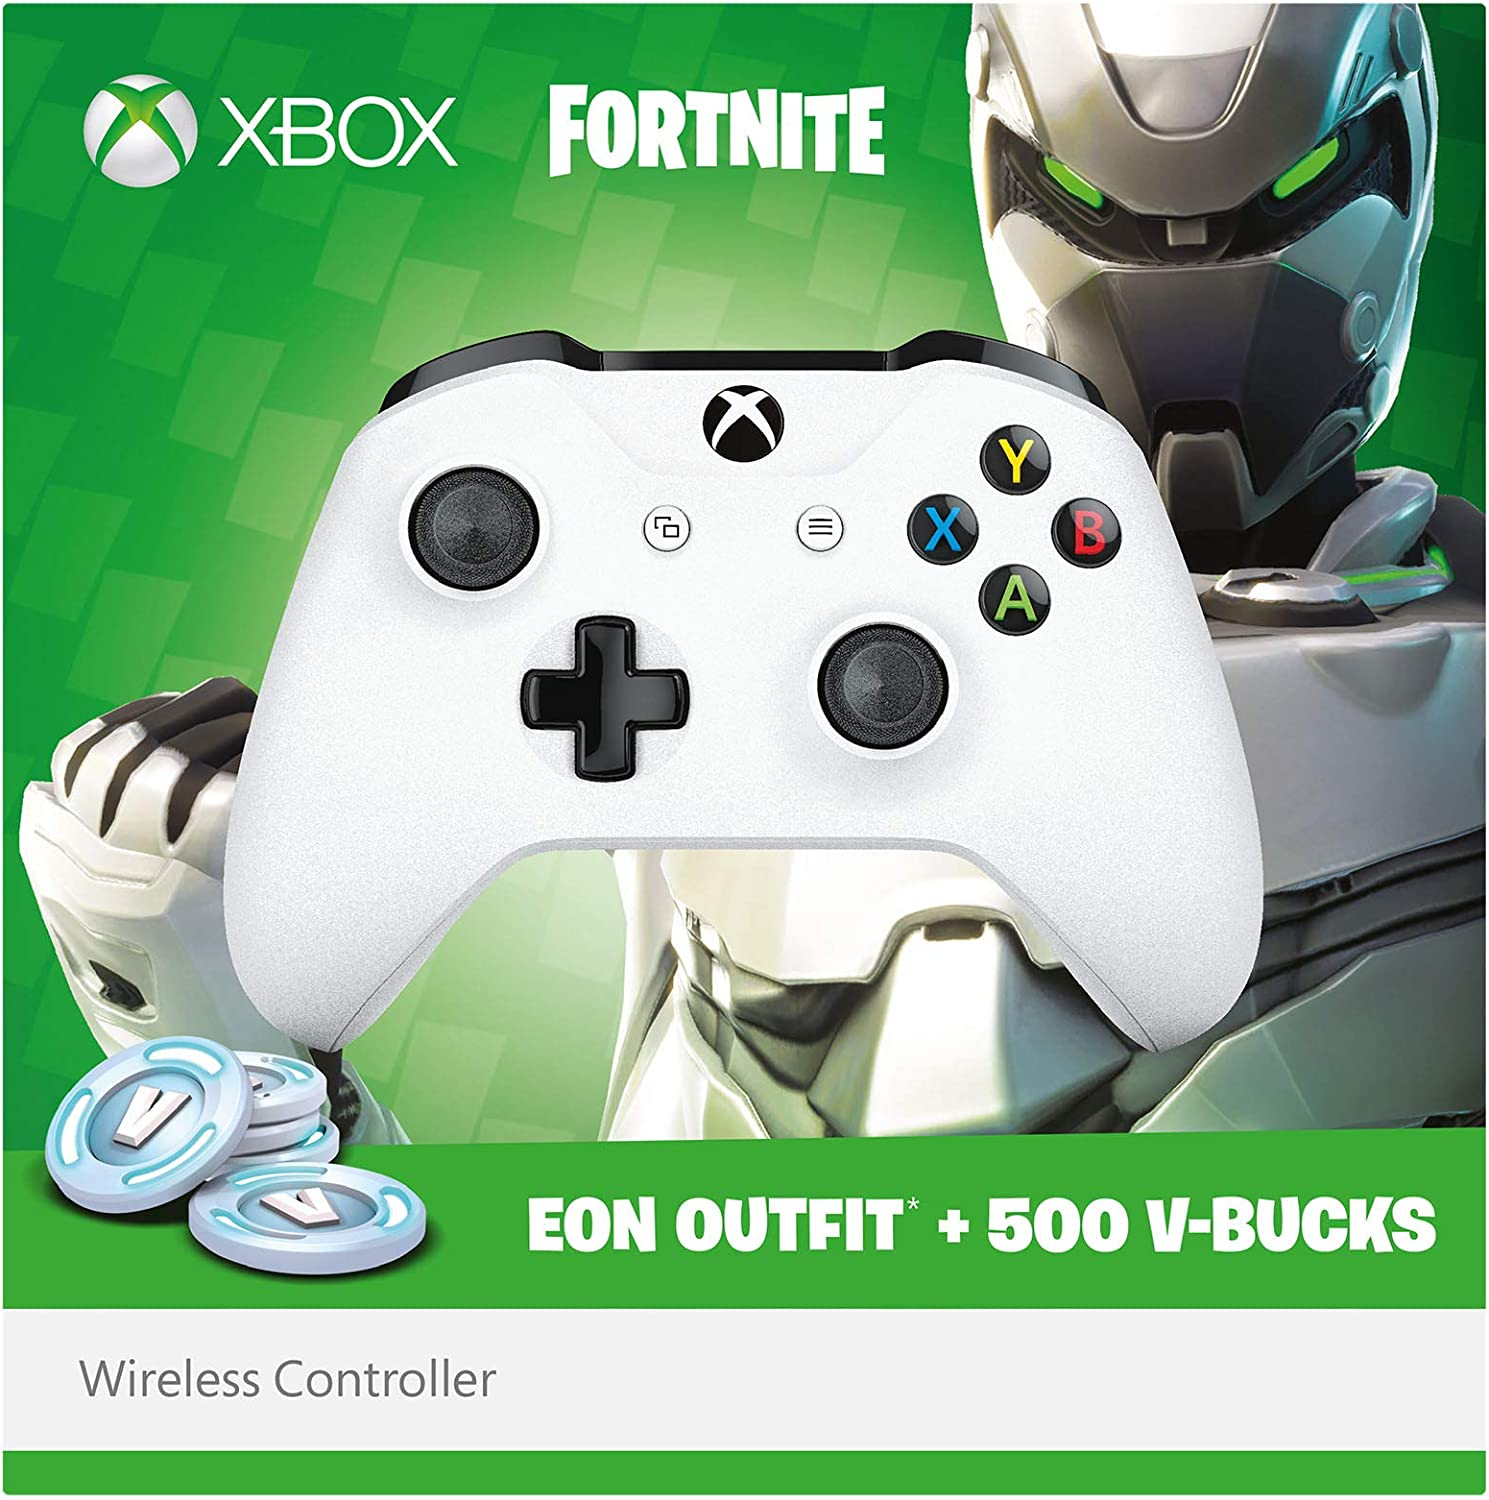 Xbox Wireless Controller - Fortnite Bundle (inkl. EON Outfit + 500 V-Bucks), Weiß, Limited Edition [Importación alemana]: Amazon.es: Videojuegos